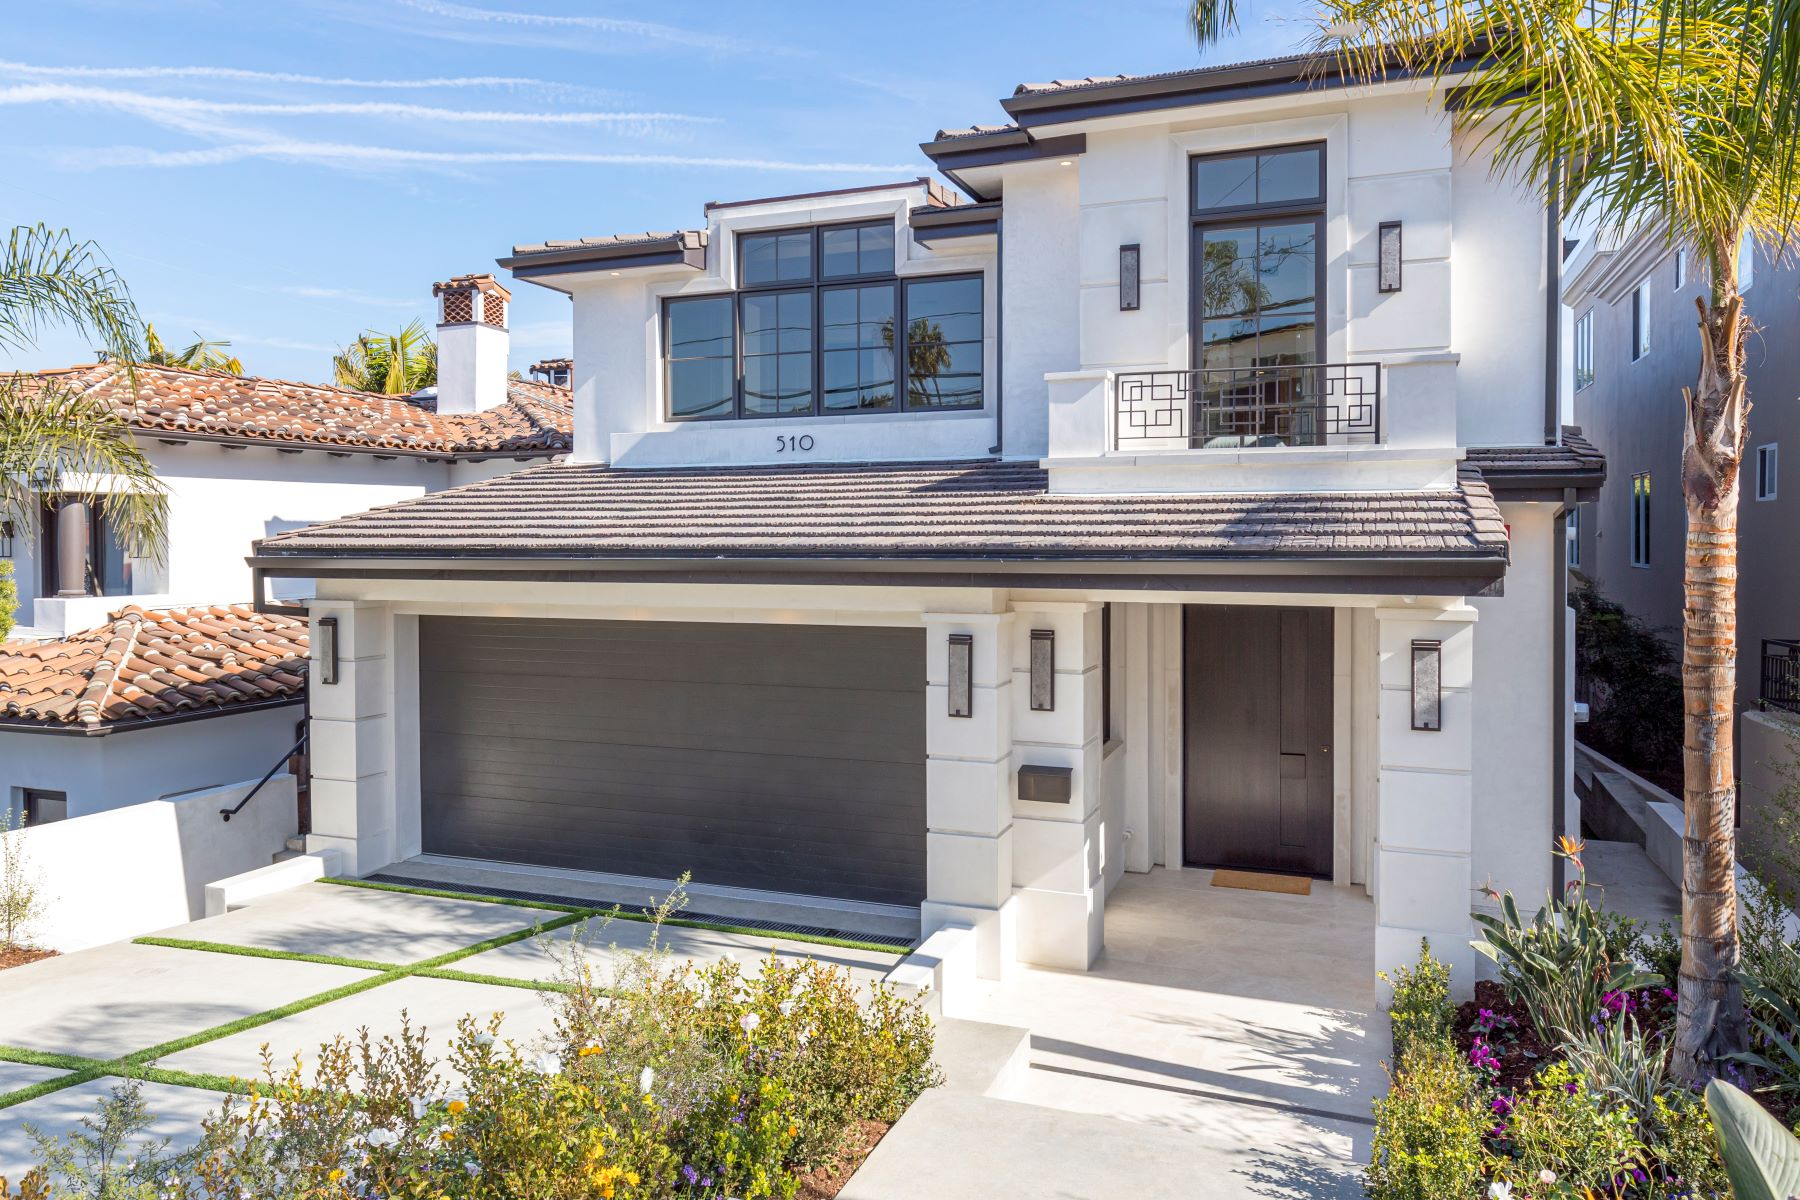 Single Family Homes for Sale at 510 North Dianthus Street, Manhattan Beach, CA 90266 510 North Dianthus Street Manhattan Beach, California 90266 United States